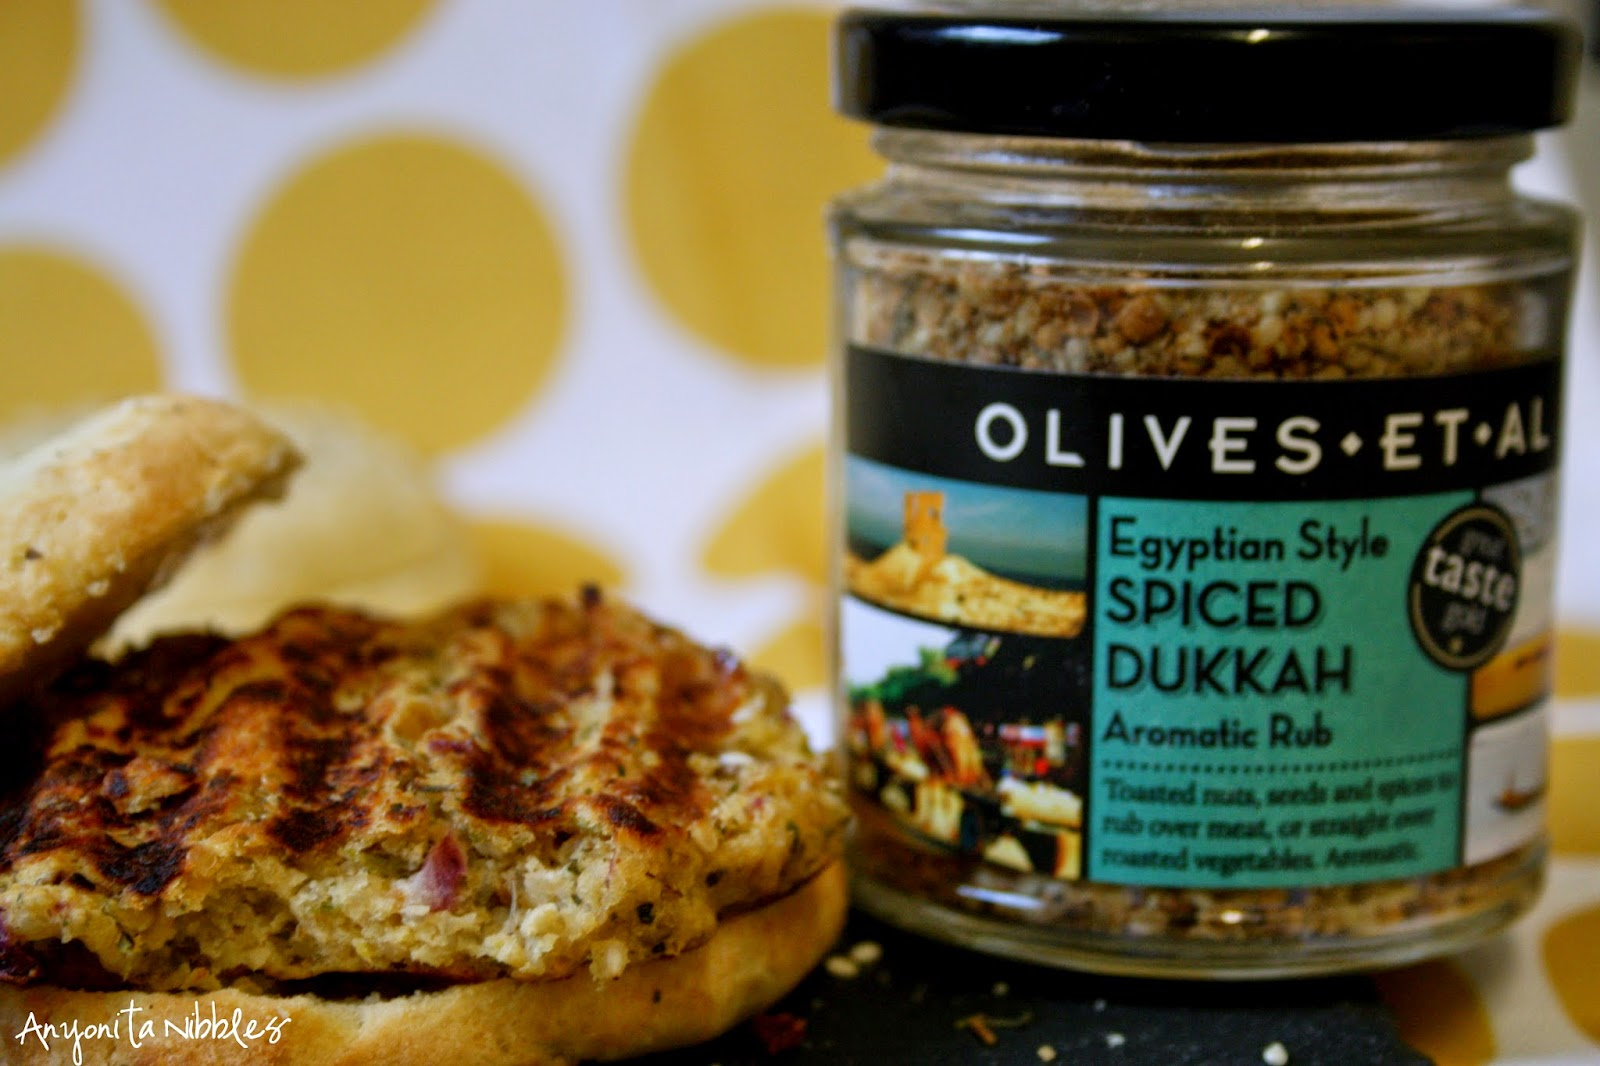 These chickpea and quinoa burgers are flavored with this Egpytian dukkah spice.